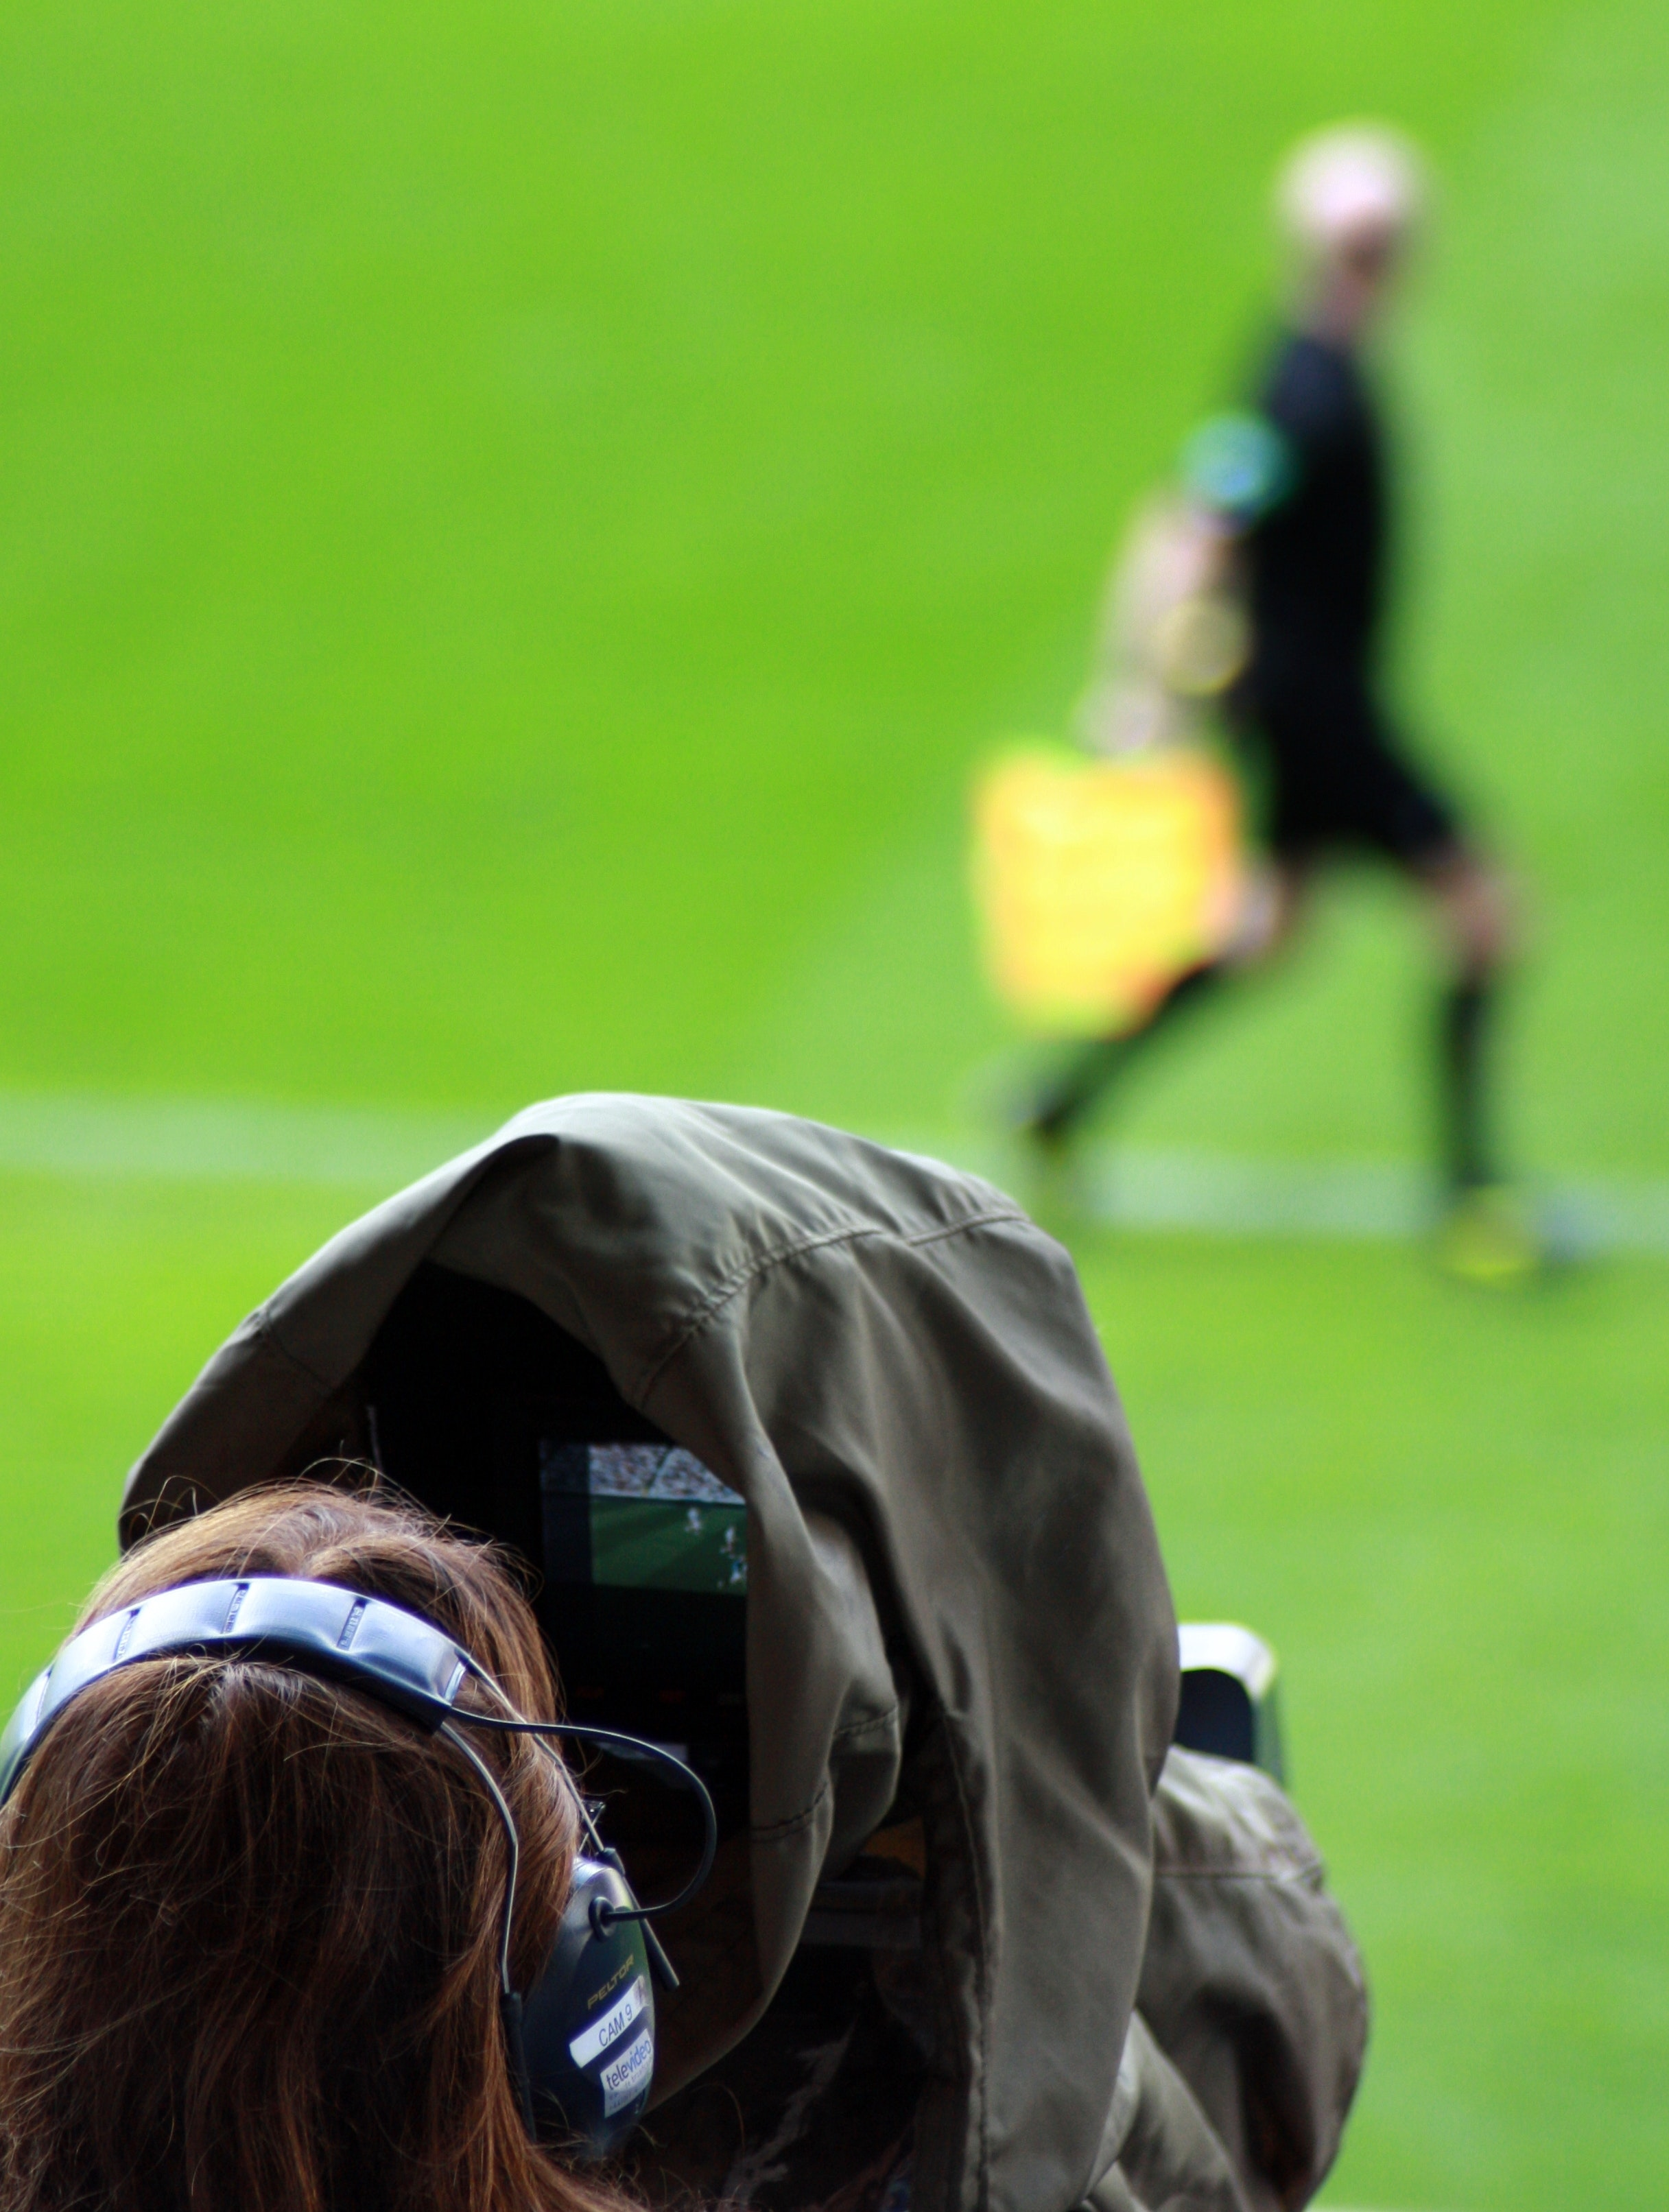 Camera person filming a soccer game